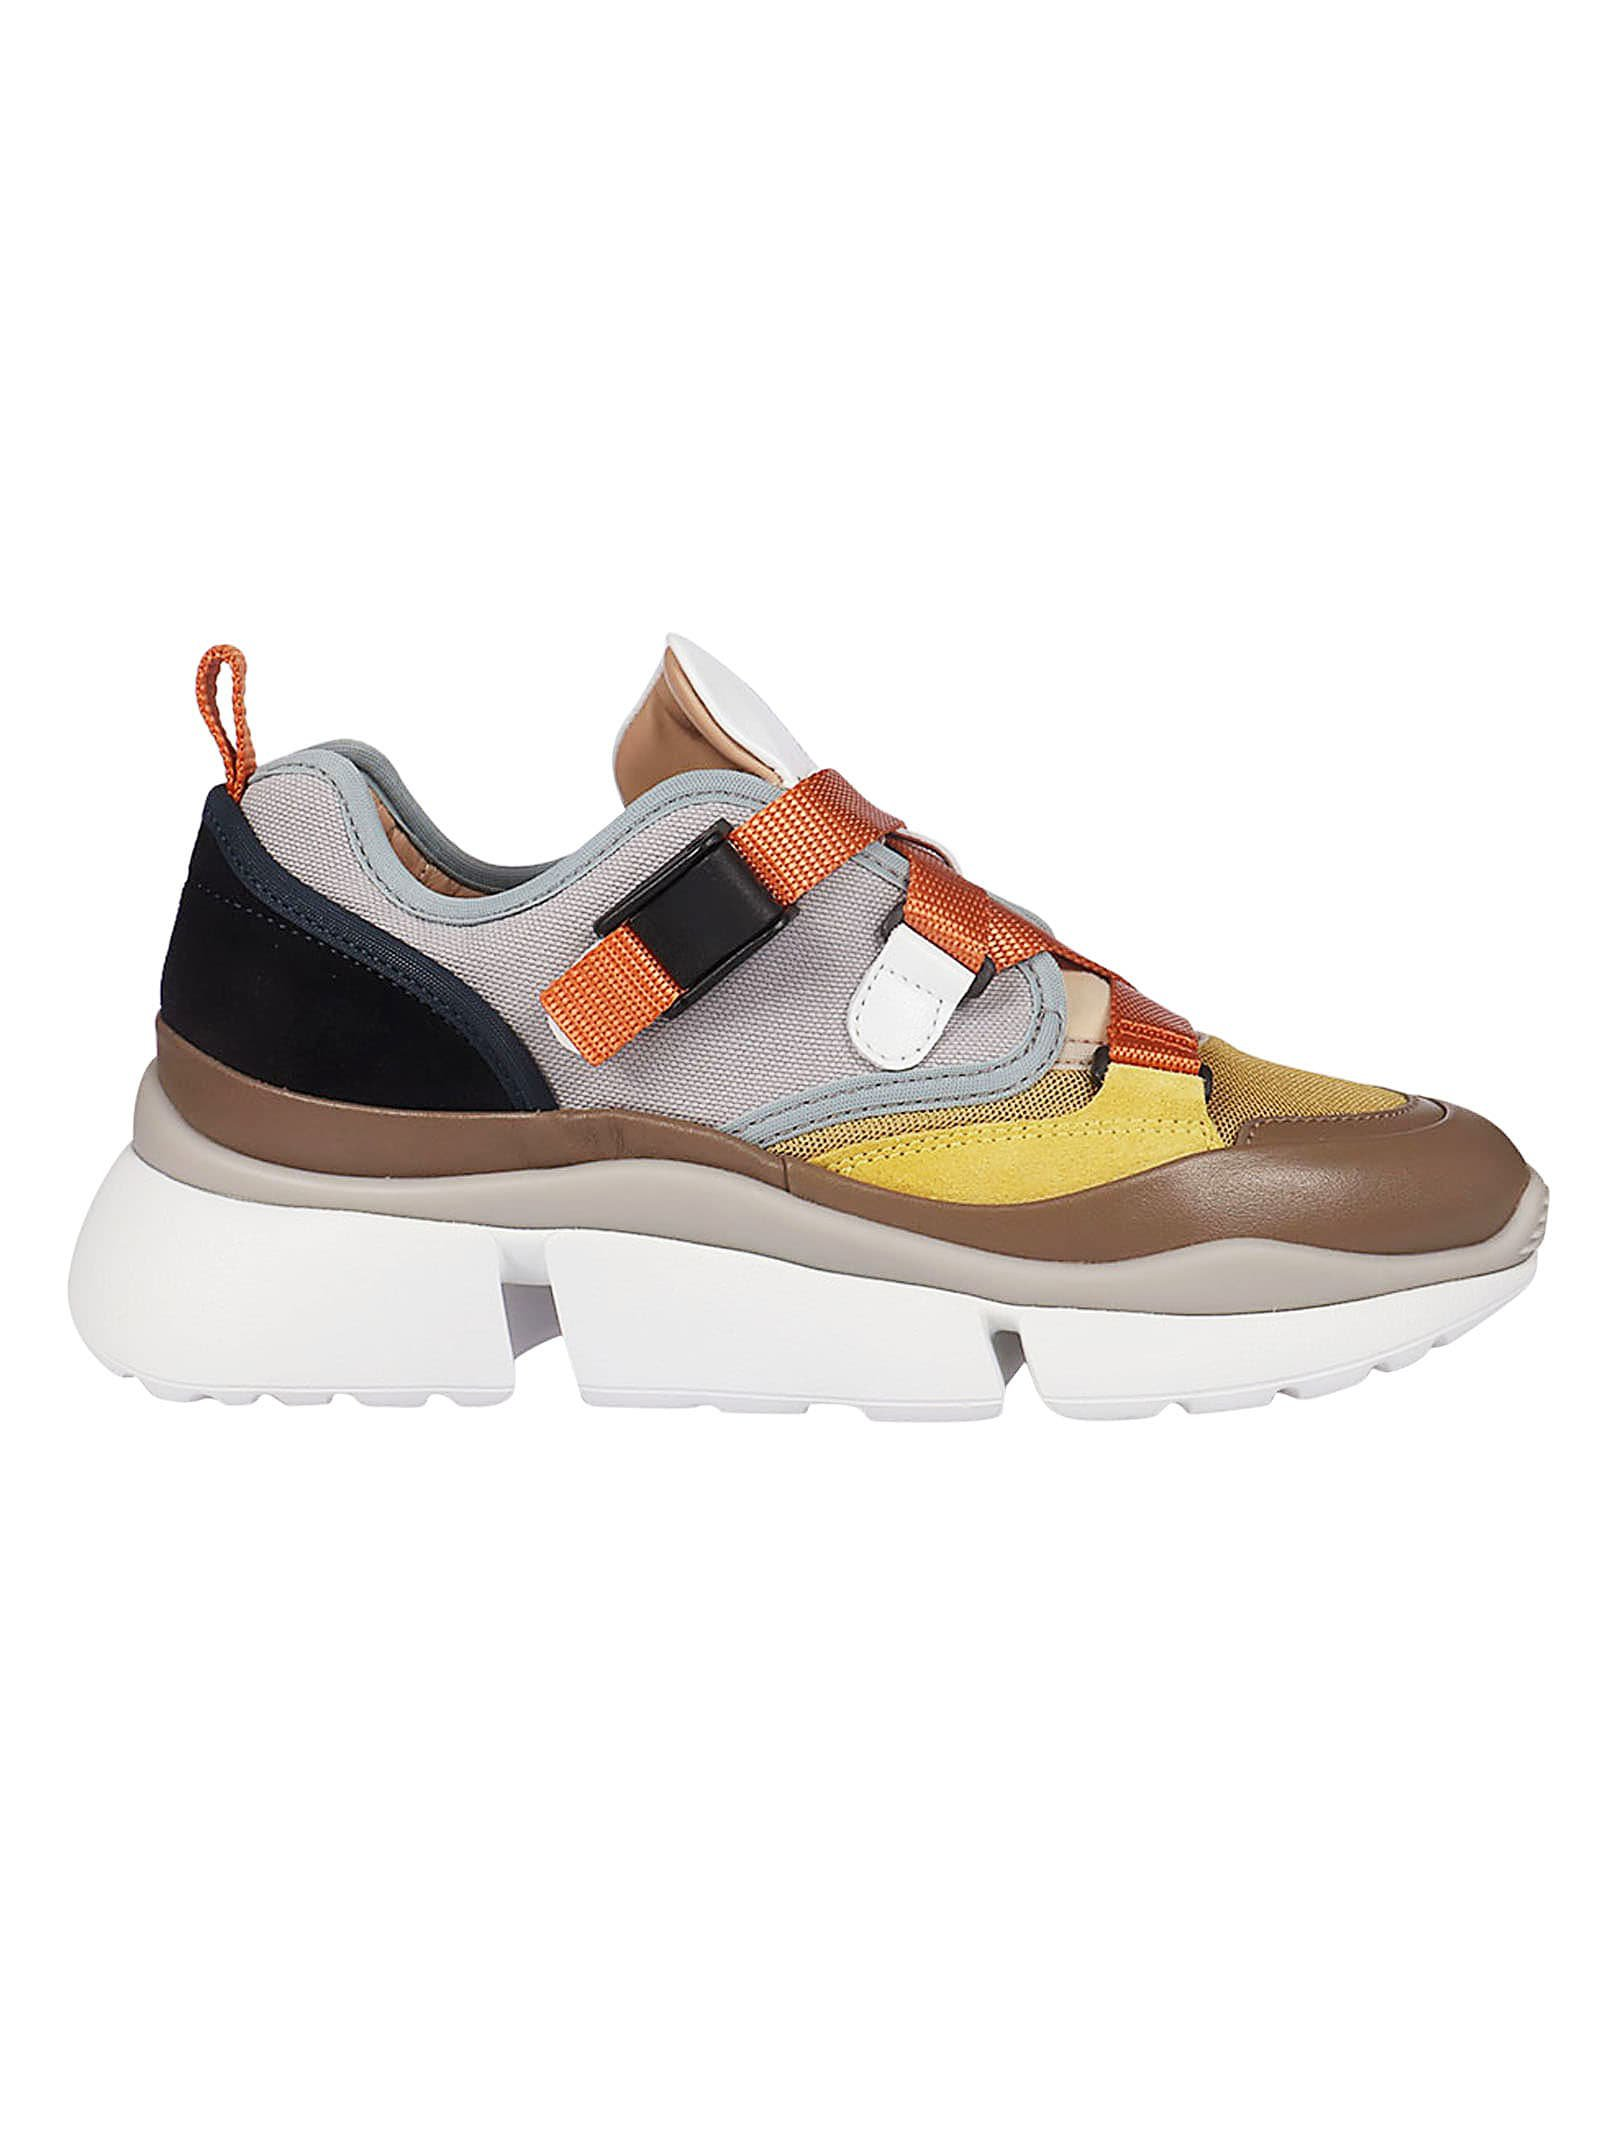 Chloé Buckled Sneakers